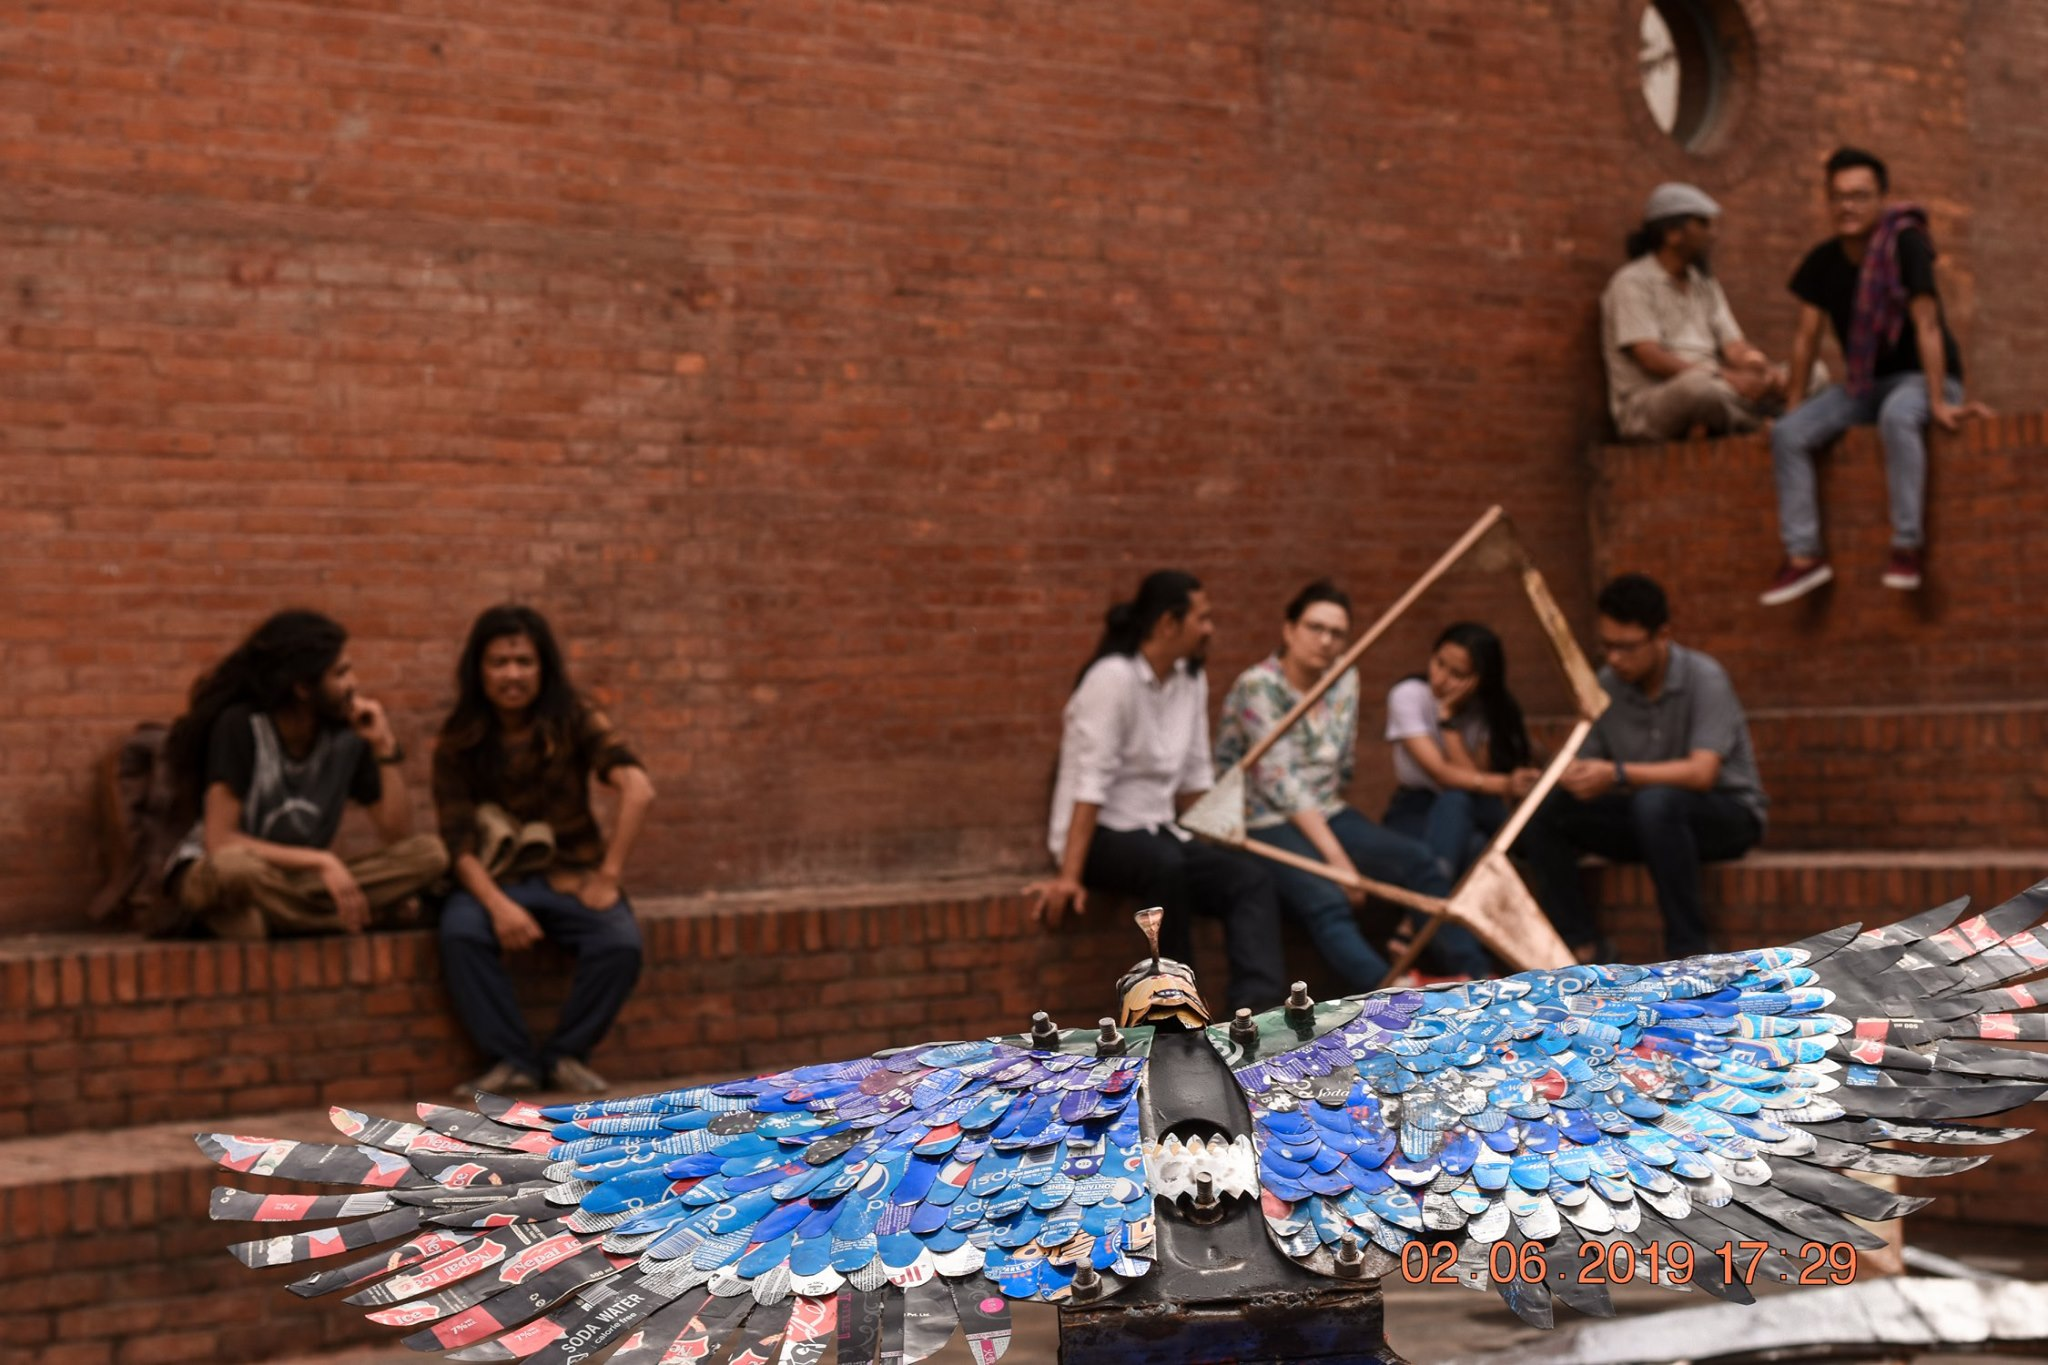 artists making art from waste